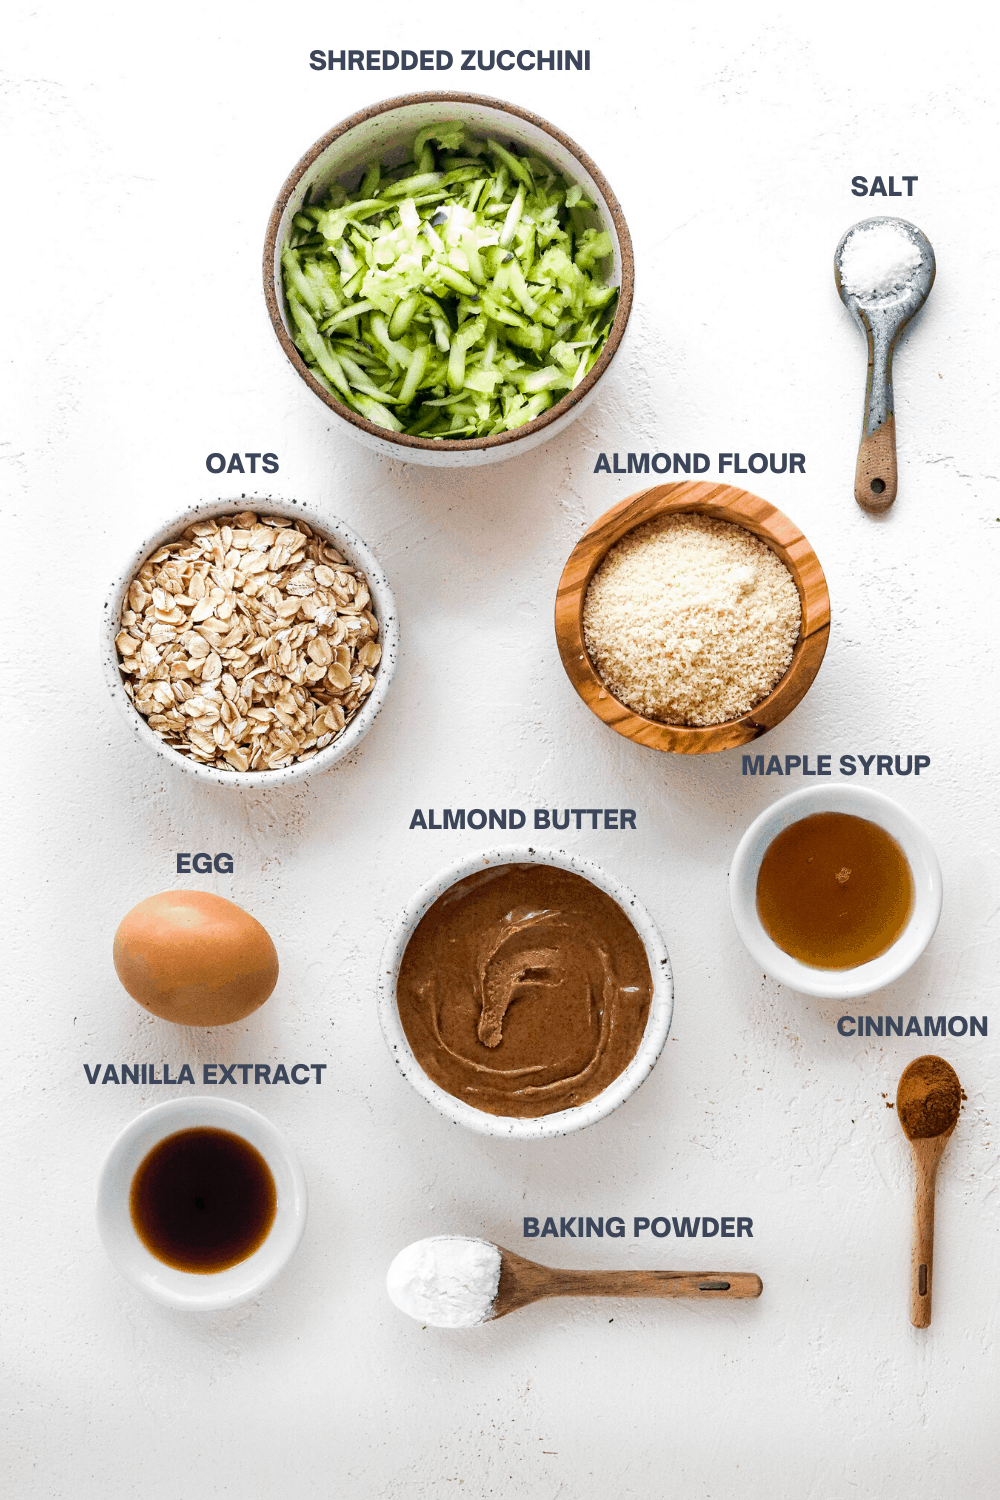 Round bowl filled with grated zucchini with a bowl of oats, bowl of almond butter, egg, maple syrup and a spoon of salt and cinnamon around it on a white surface.